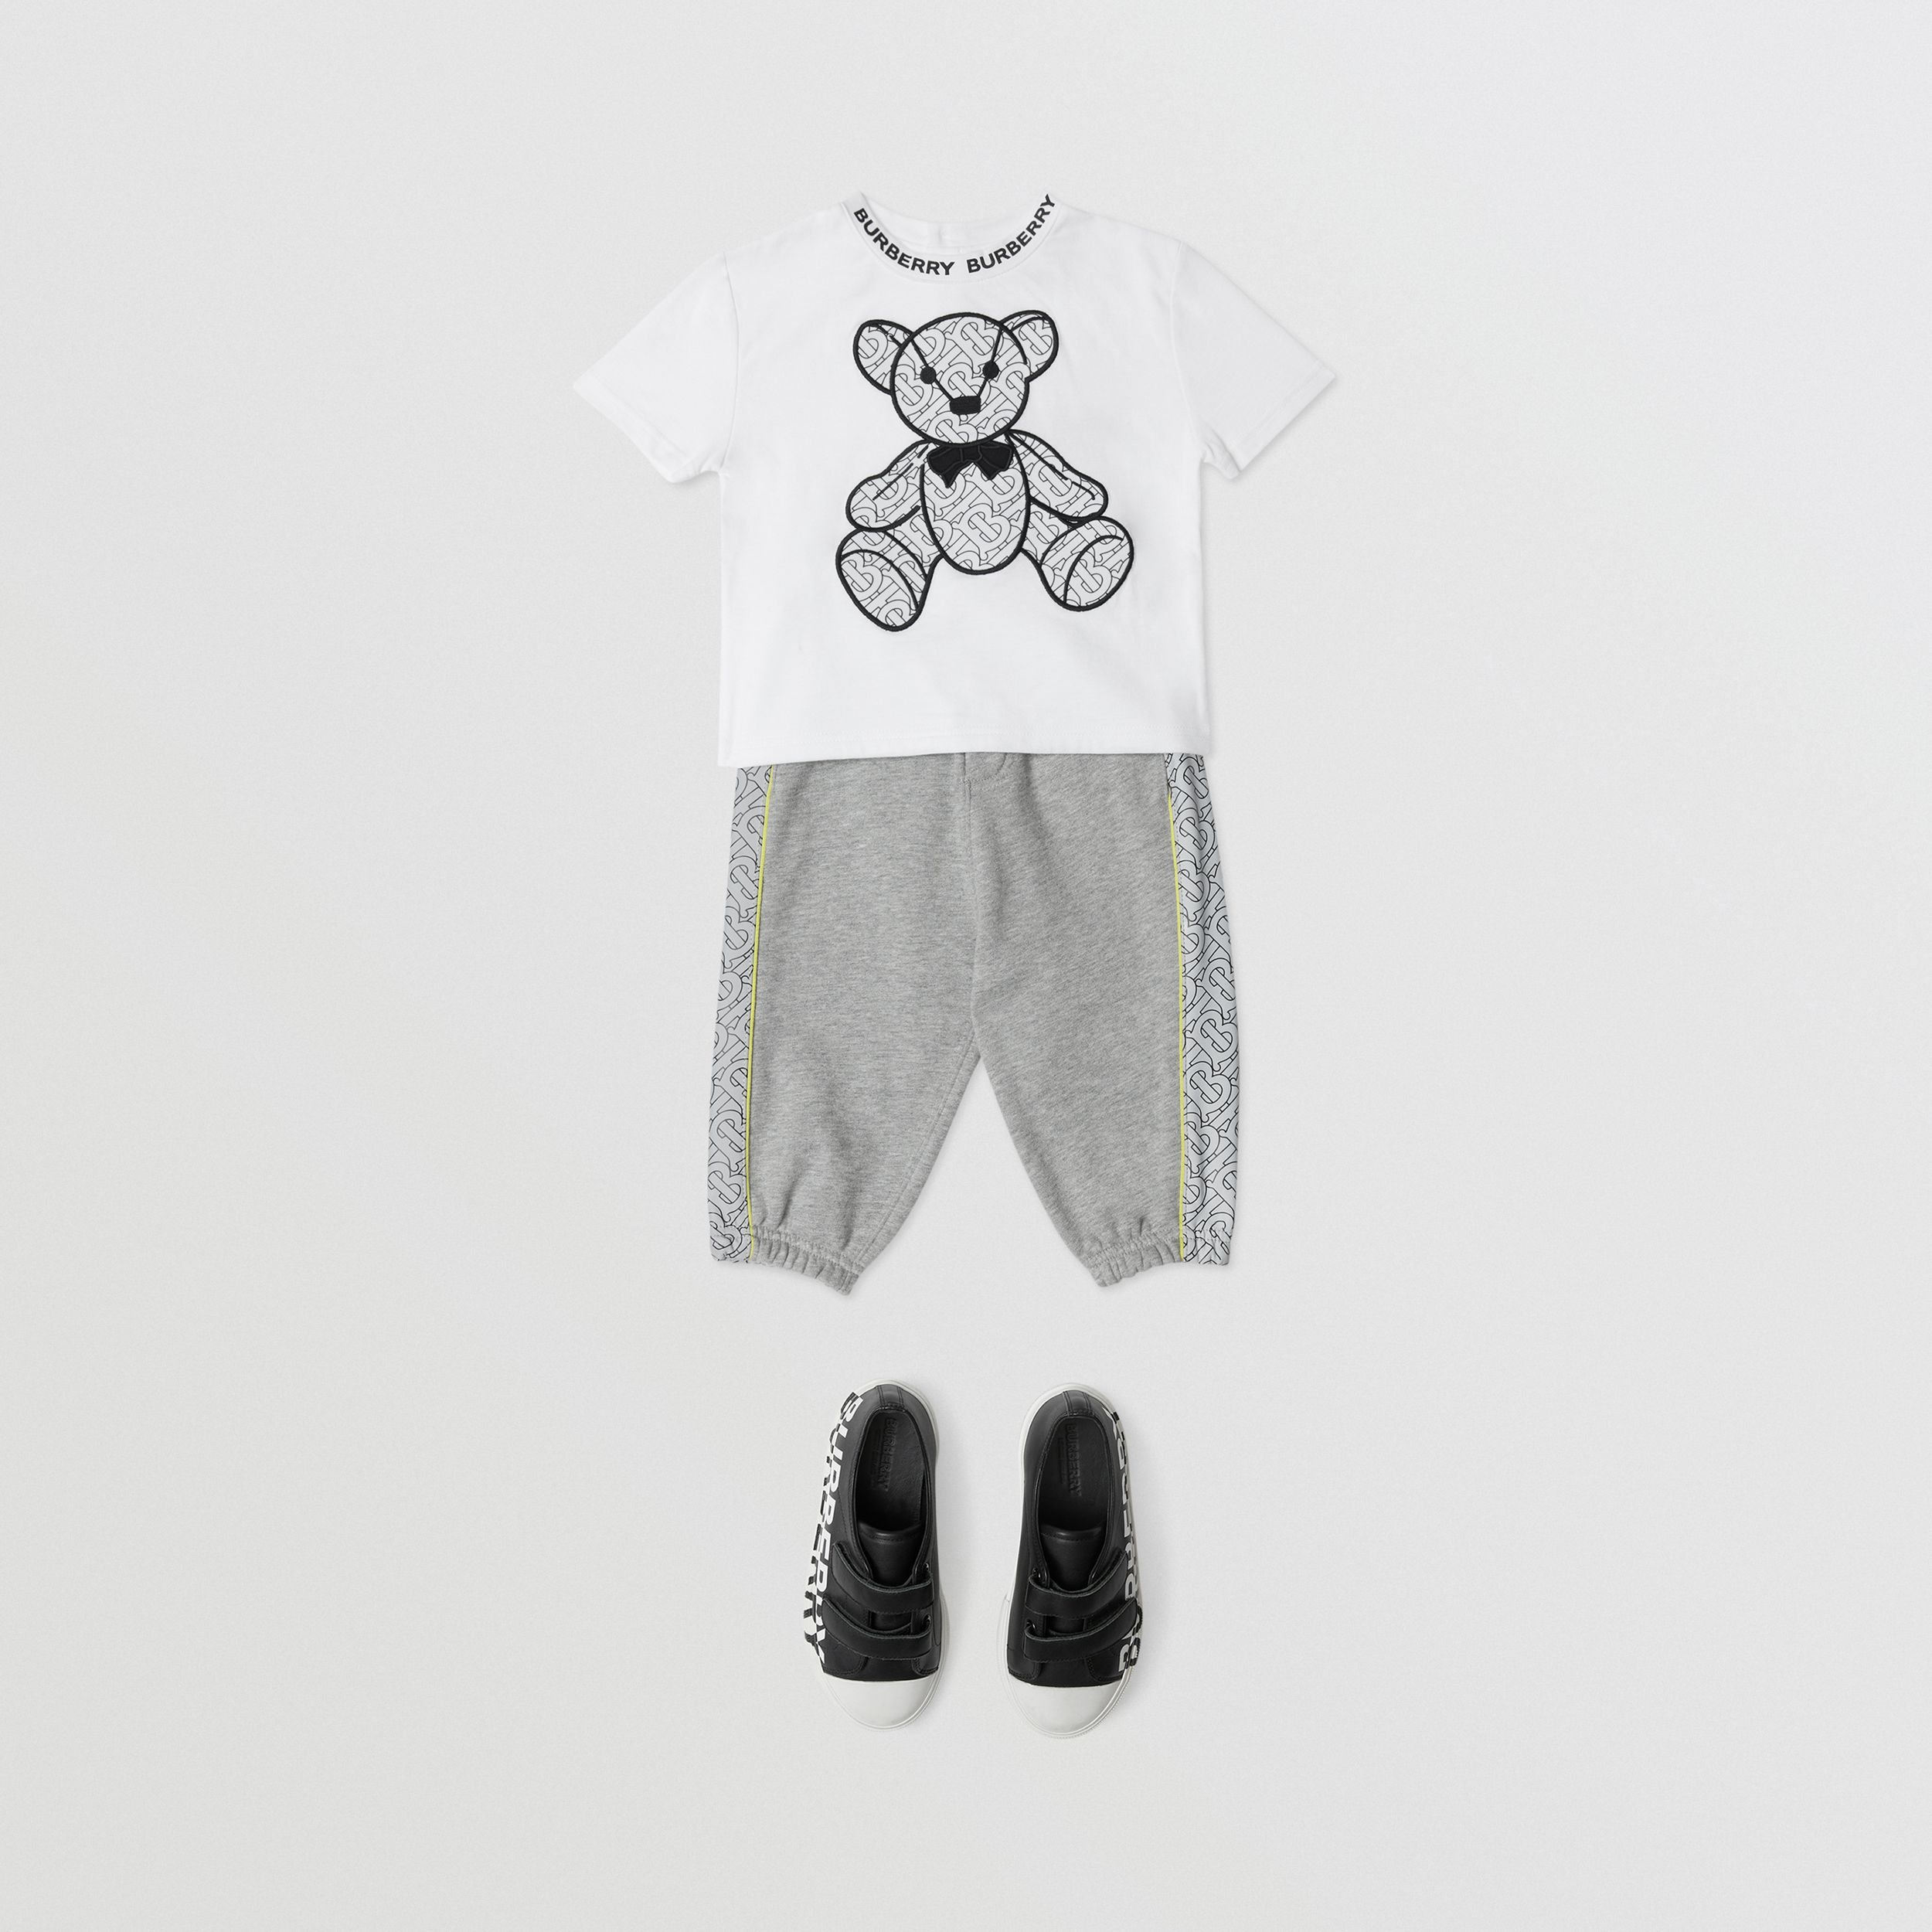 T-Shirt aus Baumwolle mit Thomas Teddybär-Applikation (Weiß) - Kinder | Burberry - 3